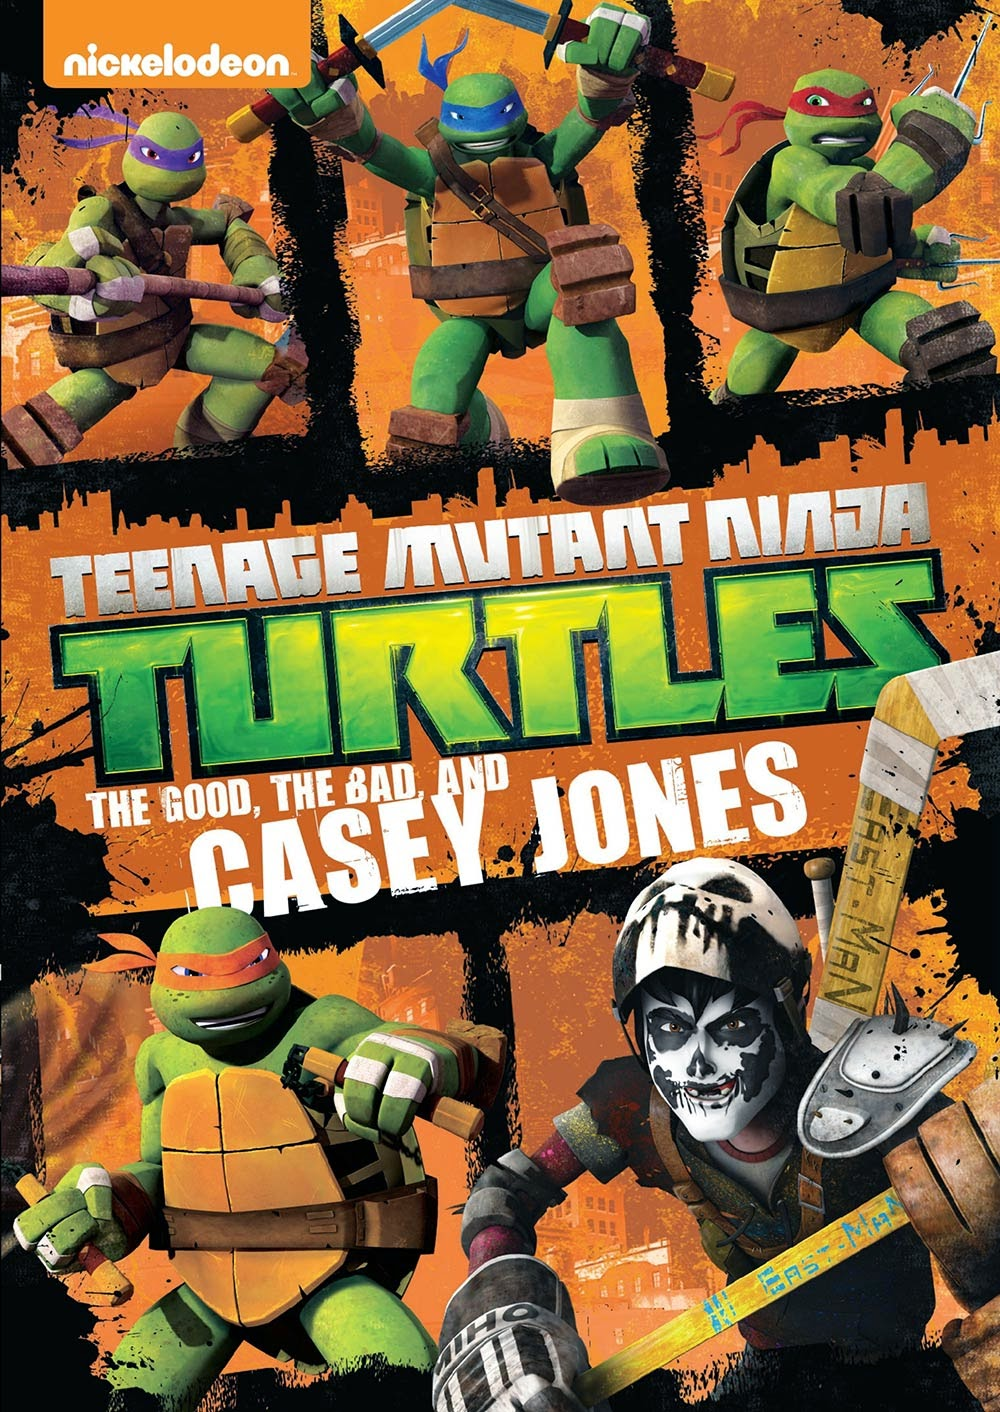 DVD Review - Teenage Mutant Ninja Turtles: The Good, The Bad, And Casey Jones